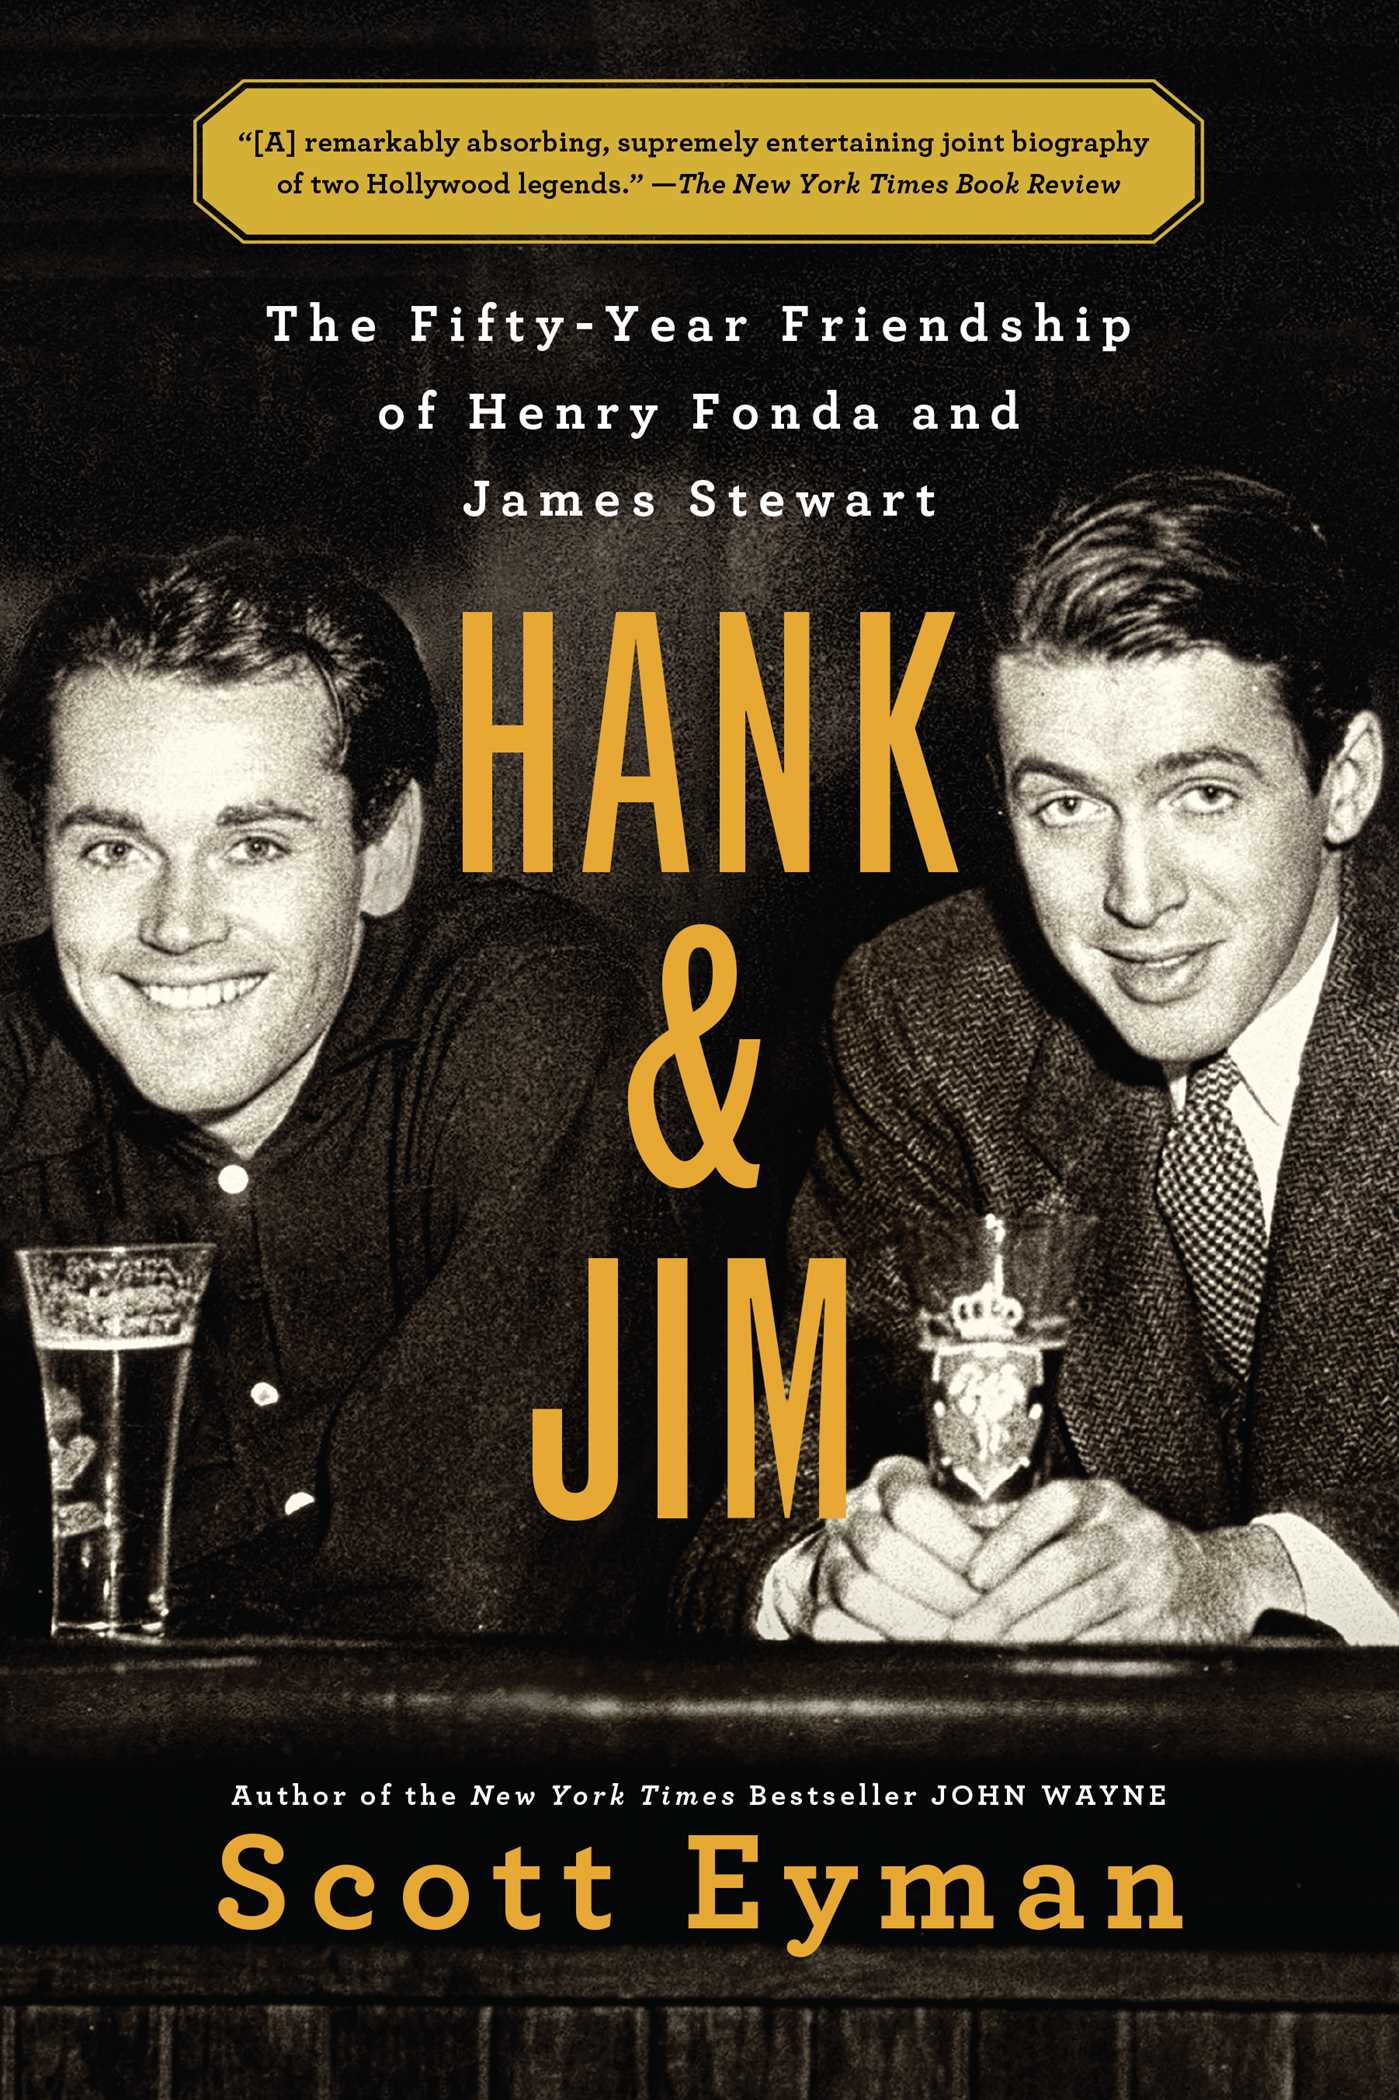 Hank and Jim The Fifty-Year Friendship of Henry Fonda and James Stewart